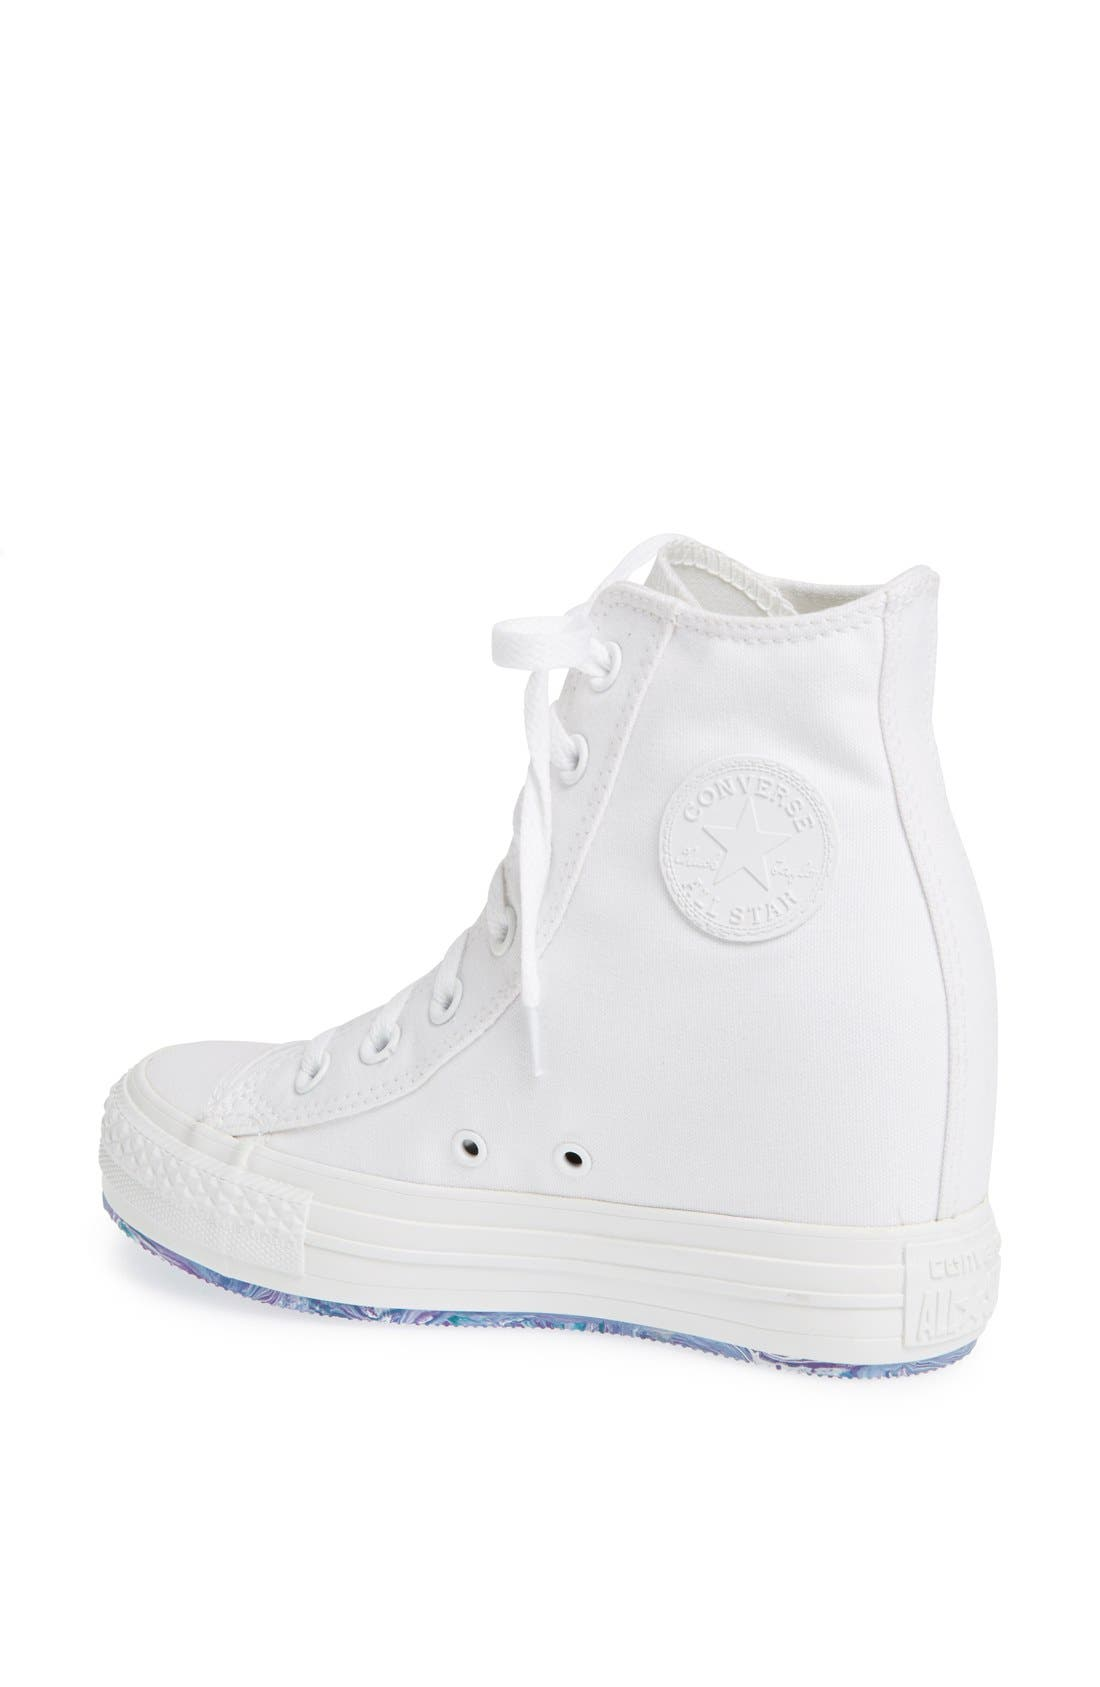 Chuck Taylor<sup>®</sup> All Star<sup>®</sup> 'Platform Plus' Hidden Wedge High-Top Sneaker,                             Alternate thumbnail 4, color,                             100